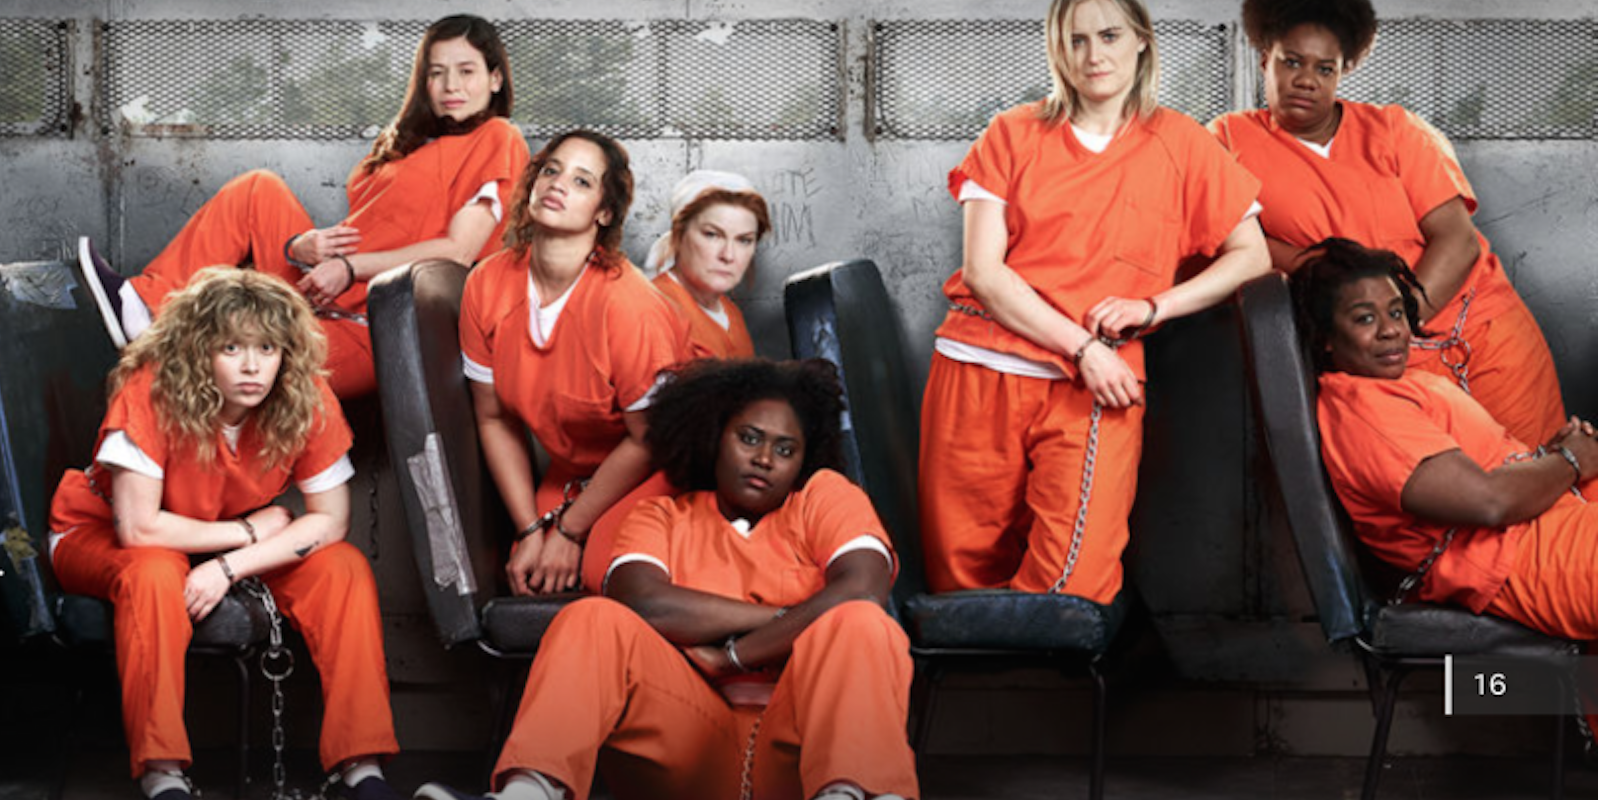 Orange Is The New Black Lip Tattoo Meaning: Orange Is The New Black Season Six Went To The Max And